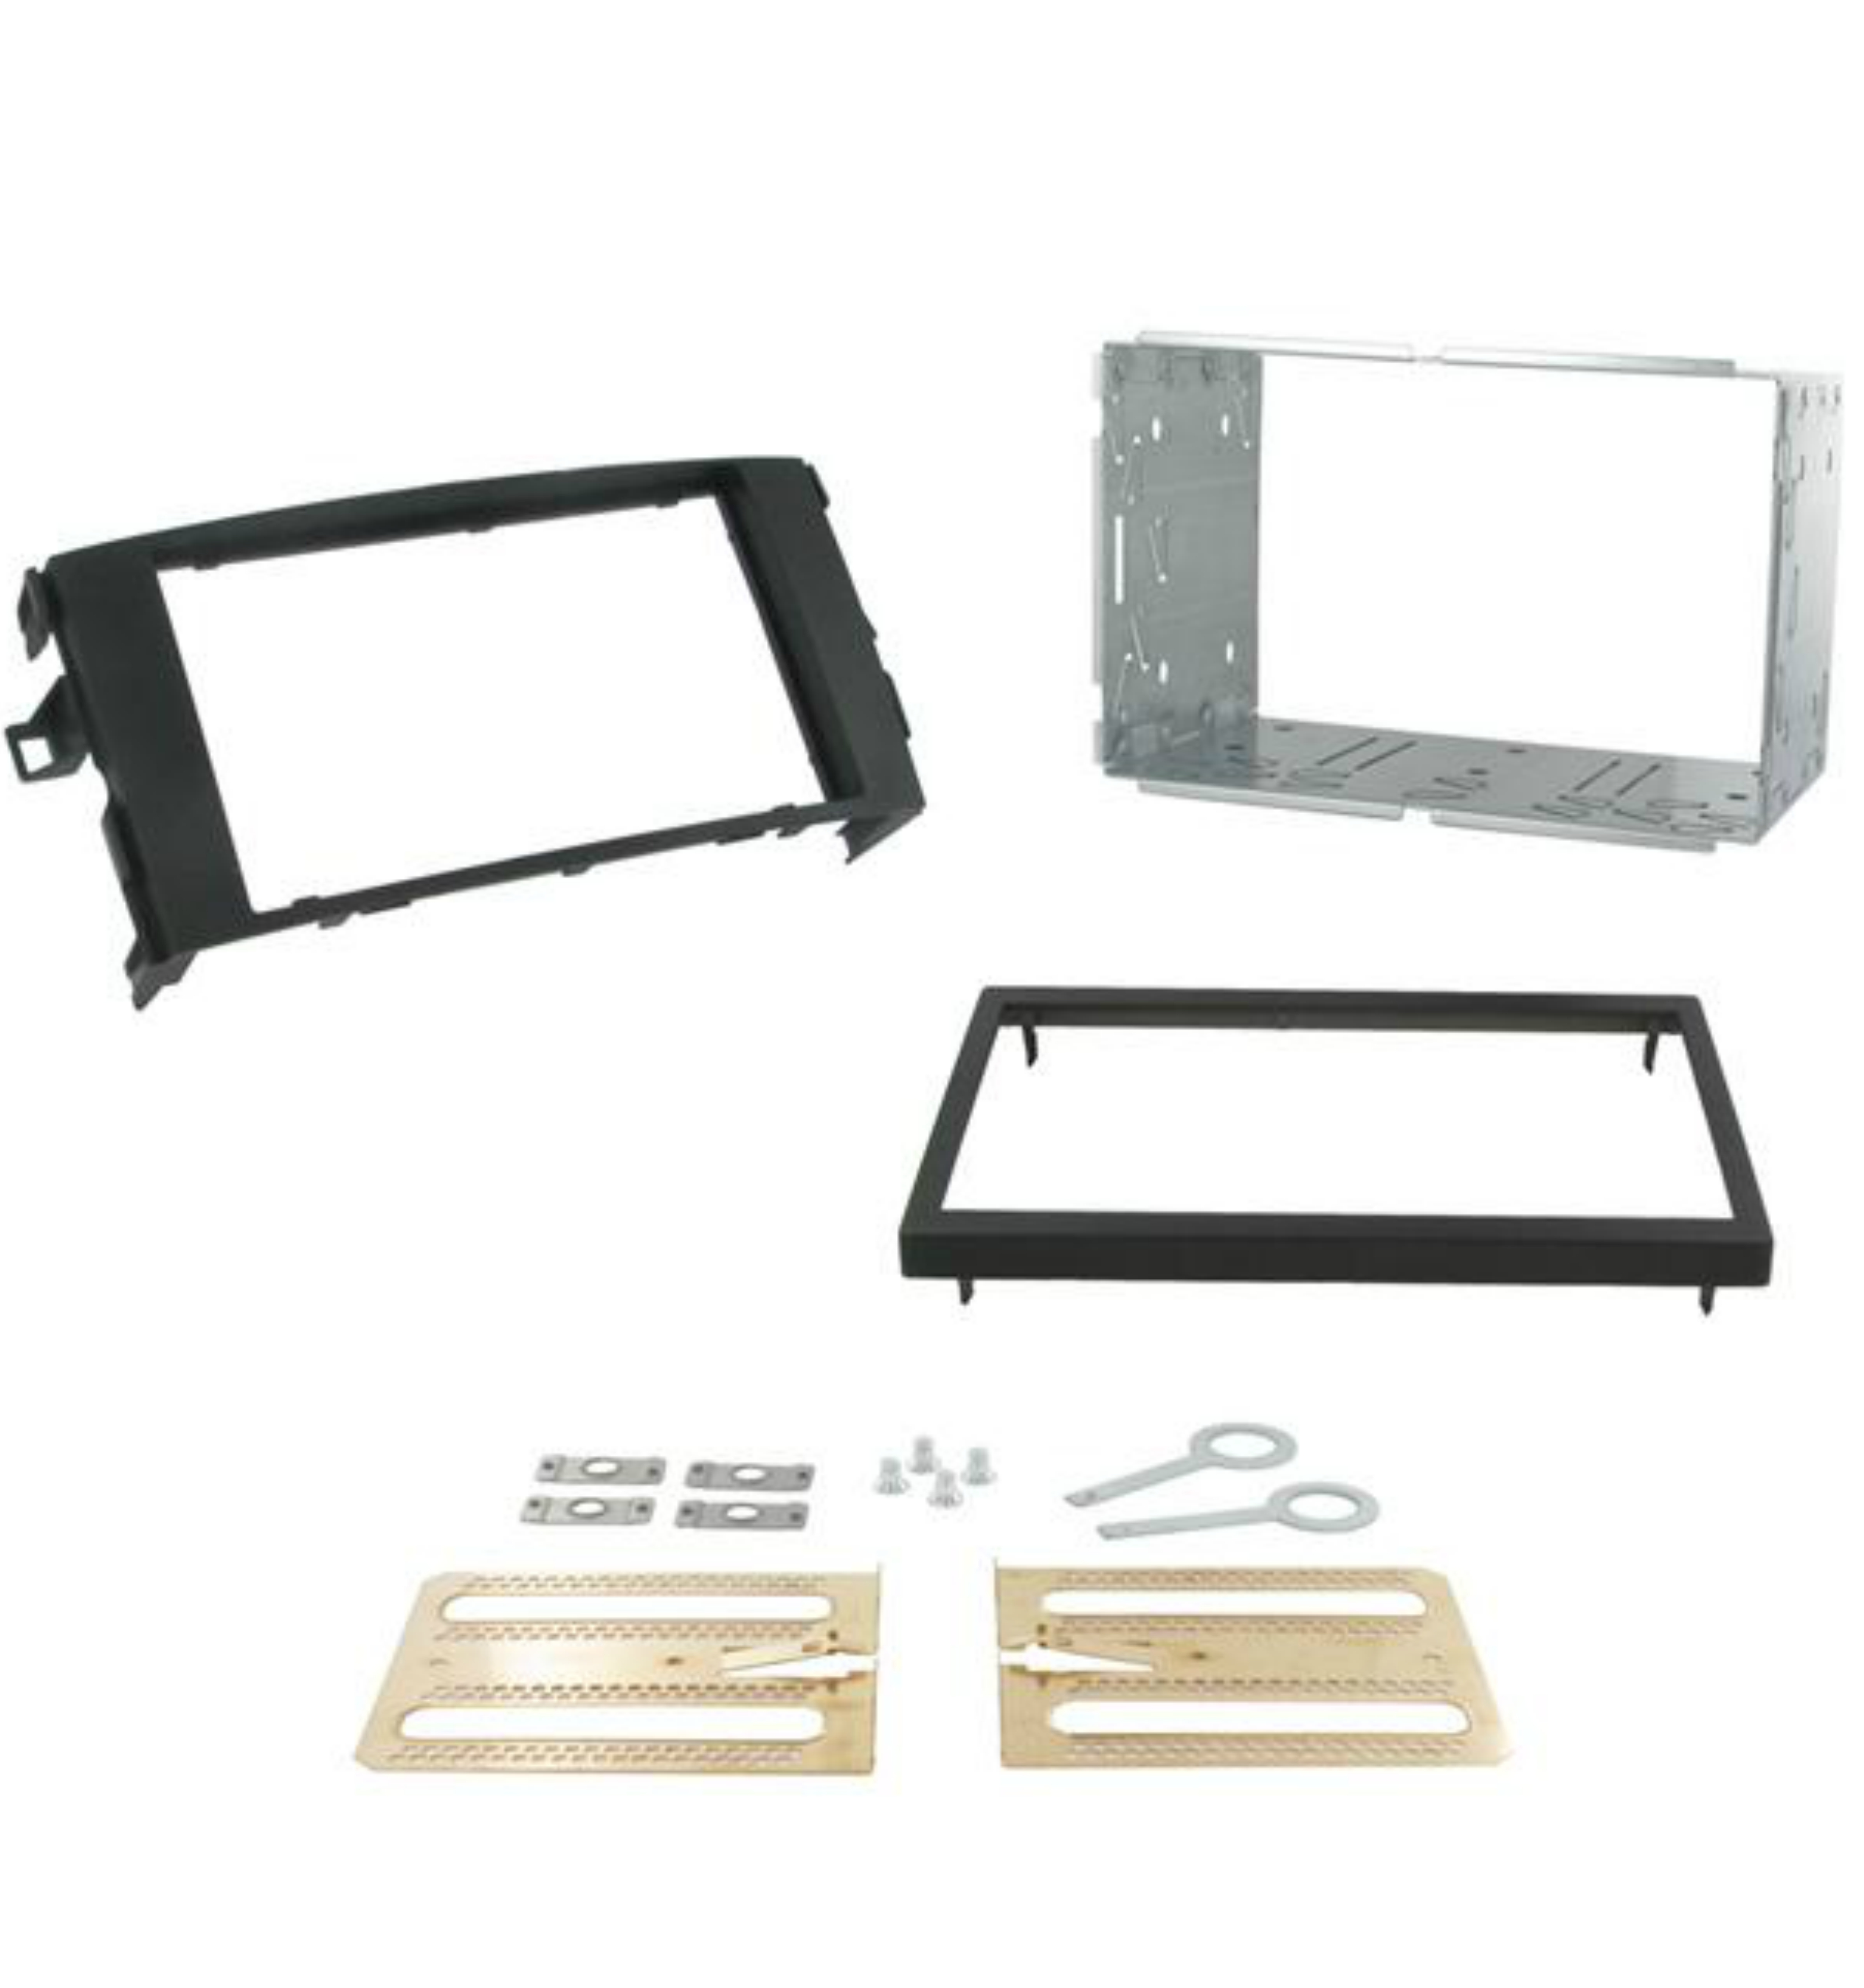 C2 Car Stereo Double Din Fascia Plate Adaptor For Toyota Auris 2007-2013